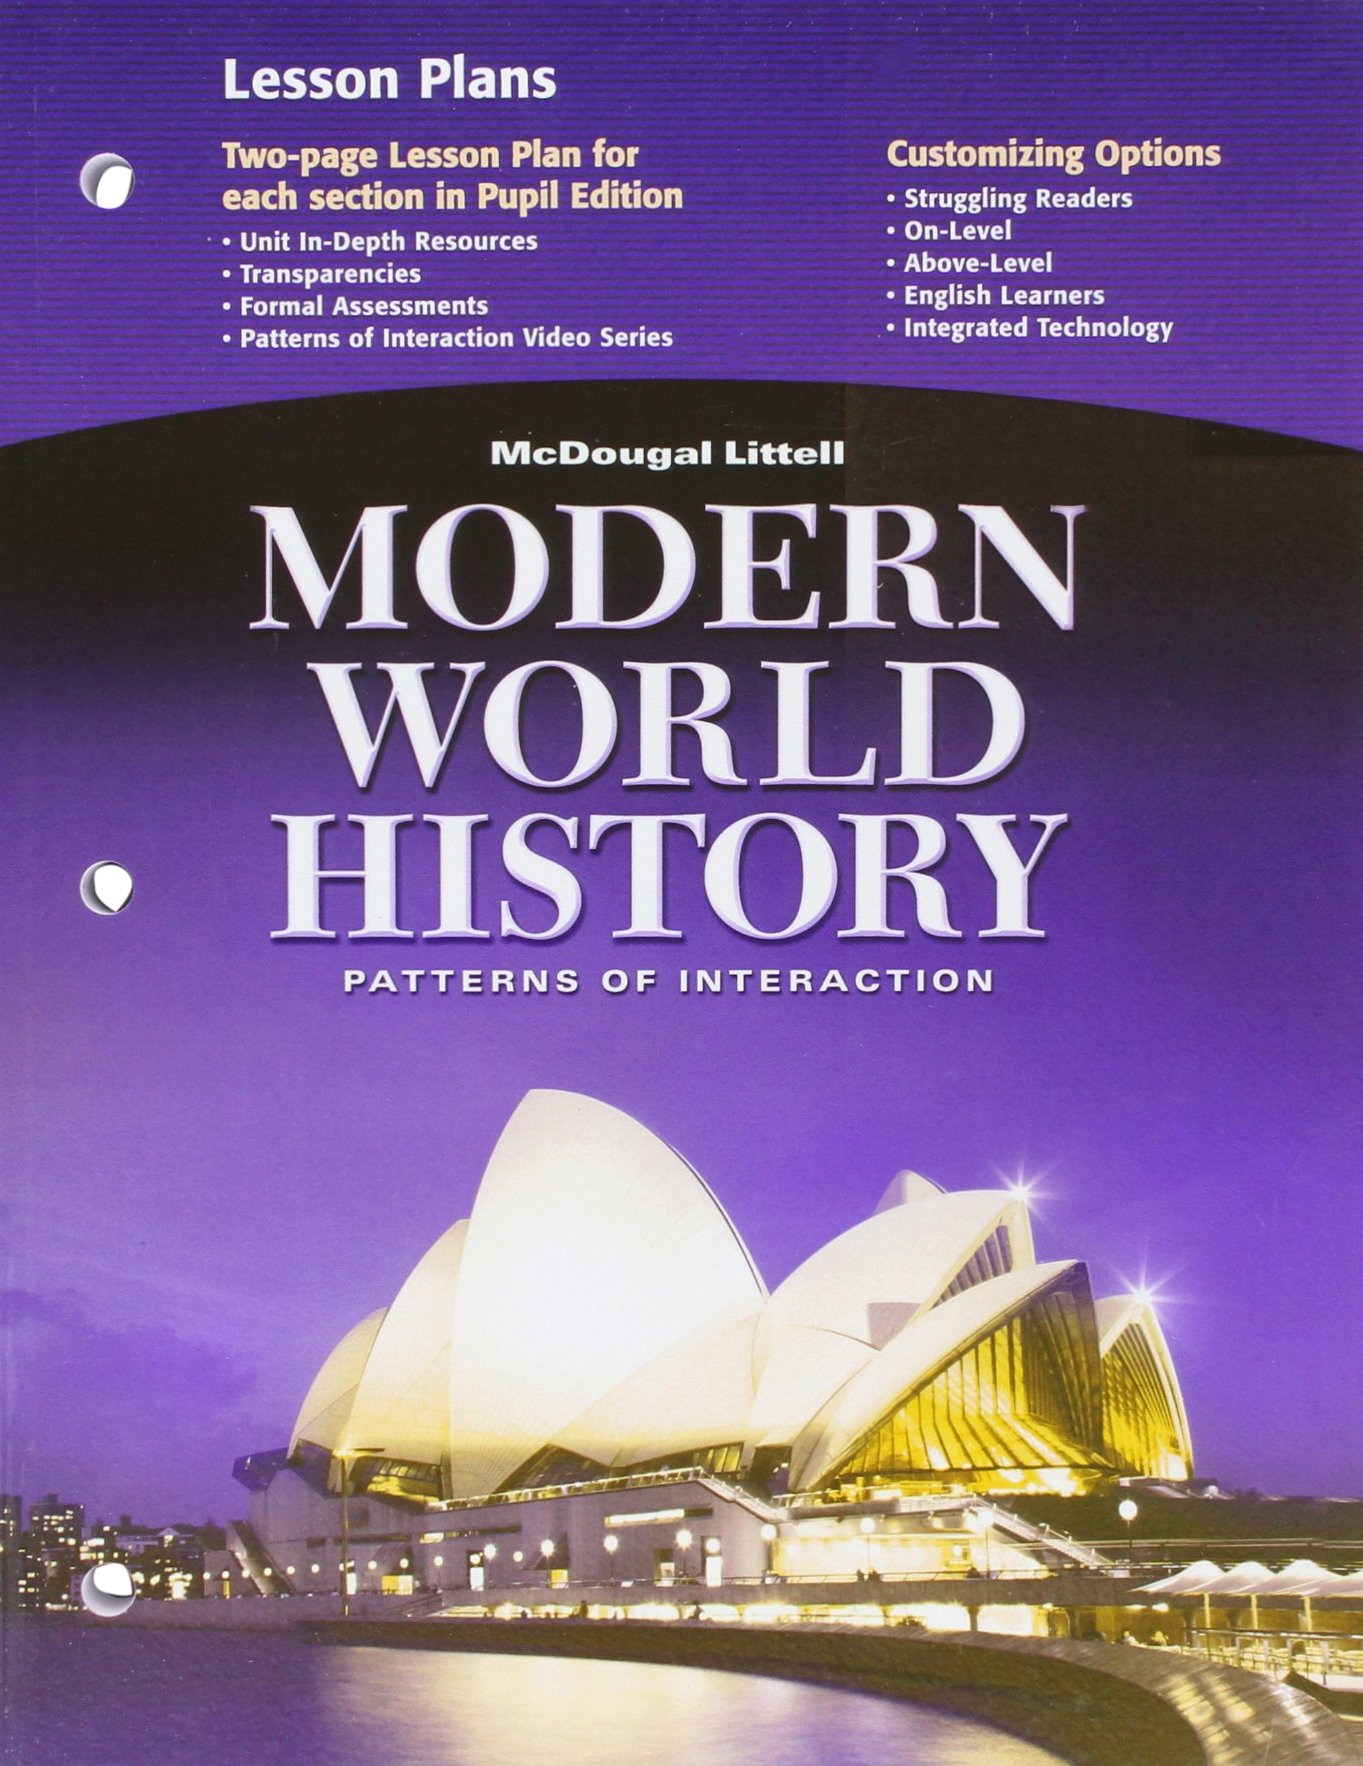 worksheet World History Patterns Of Interaction Worksheets amazon com mcdougal littell world history patterns of interaction lesson plans grades 9 12 modern 97806184098